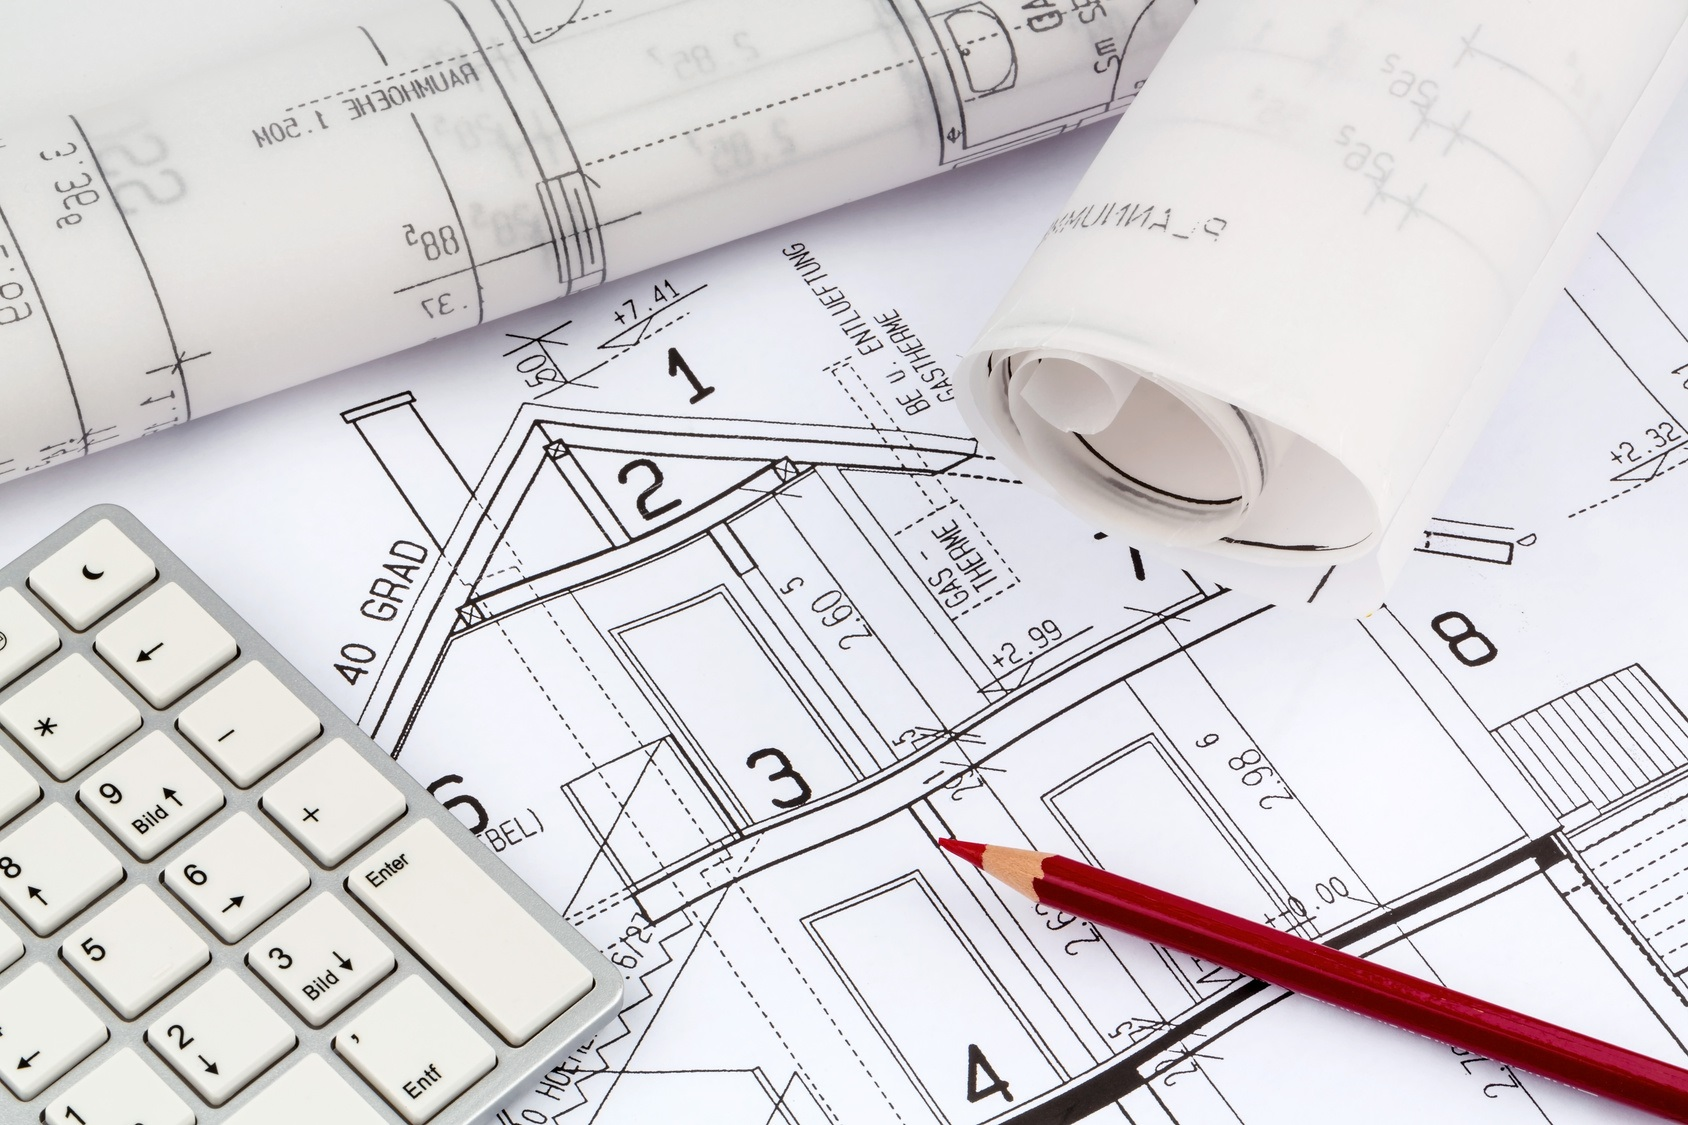 an architect's blueprint for the construction of a new residential house. symbolic photo for funding and planning of a new house.